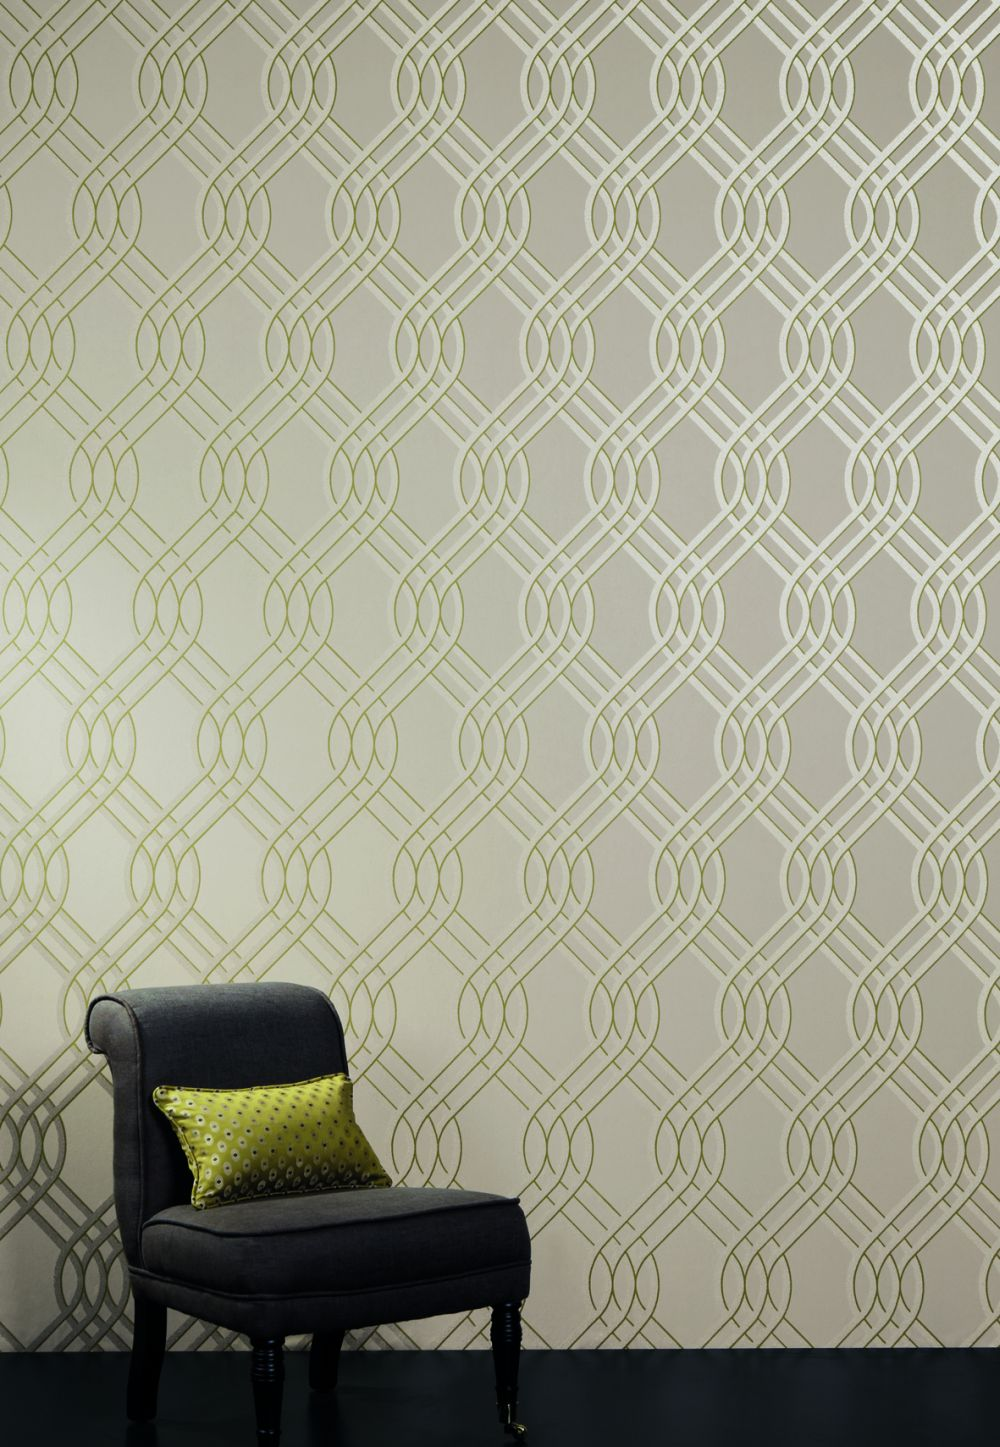 Arioso by romo wallpaper direct for Wallpaper direct